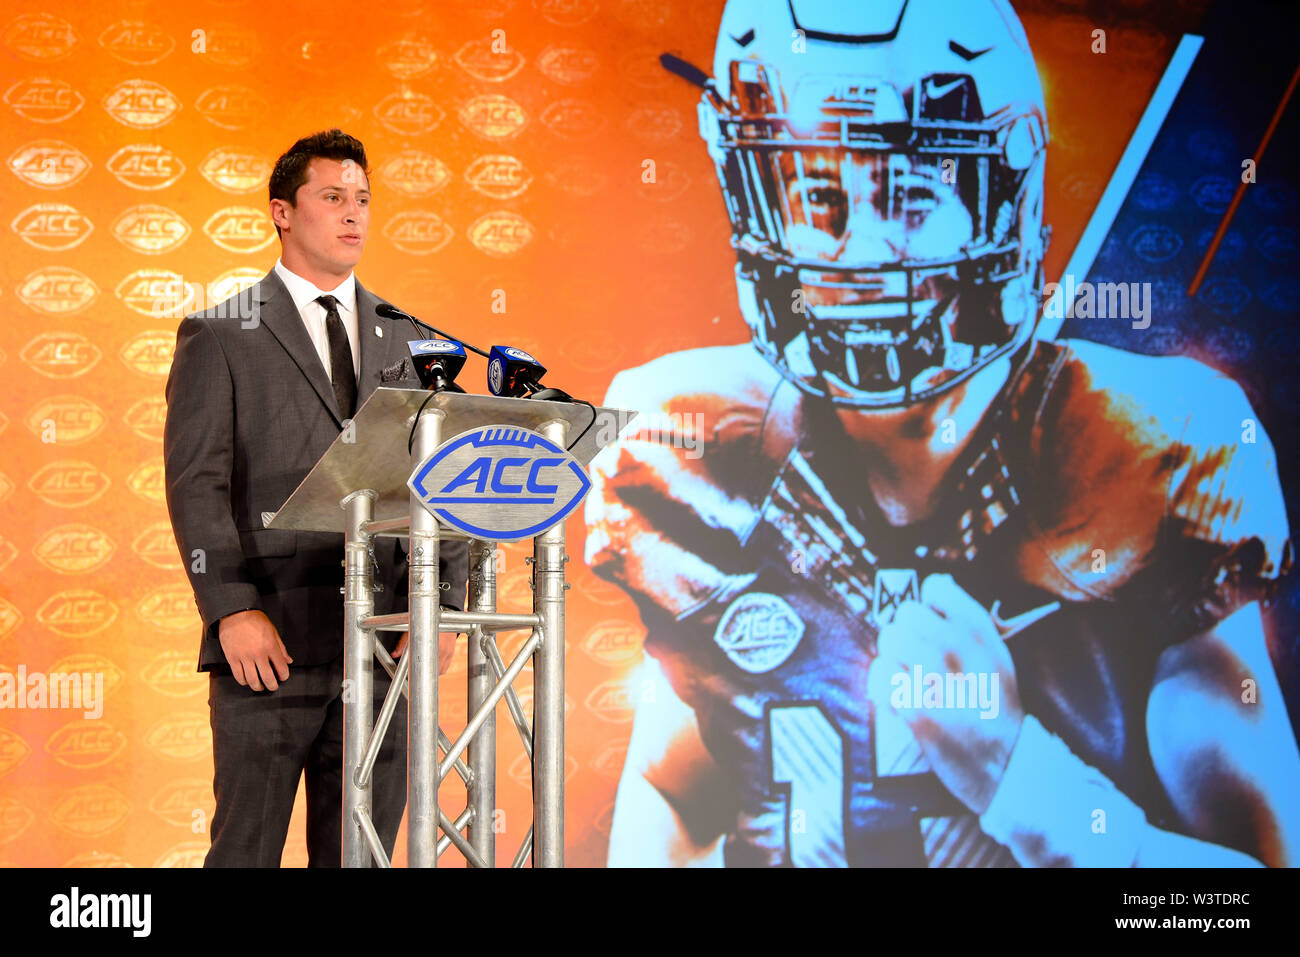 Charlotte, North Carolina, USA. 17th July, 2019. Syracuse TOMMY DEVITO (QB) speaking to reporters during the ACC Atlantic Division Coach/Student interviews on July 17, 2019 at the Westin Hotels & Resorts in Charlotte, N.C. Credit: Ed Clemente/ZUMA Wire/Alamy Live News - Stock Image